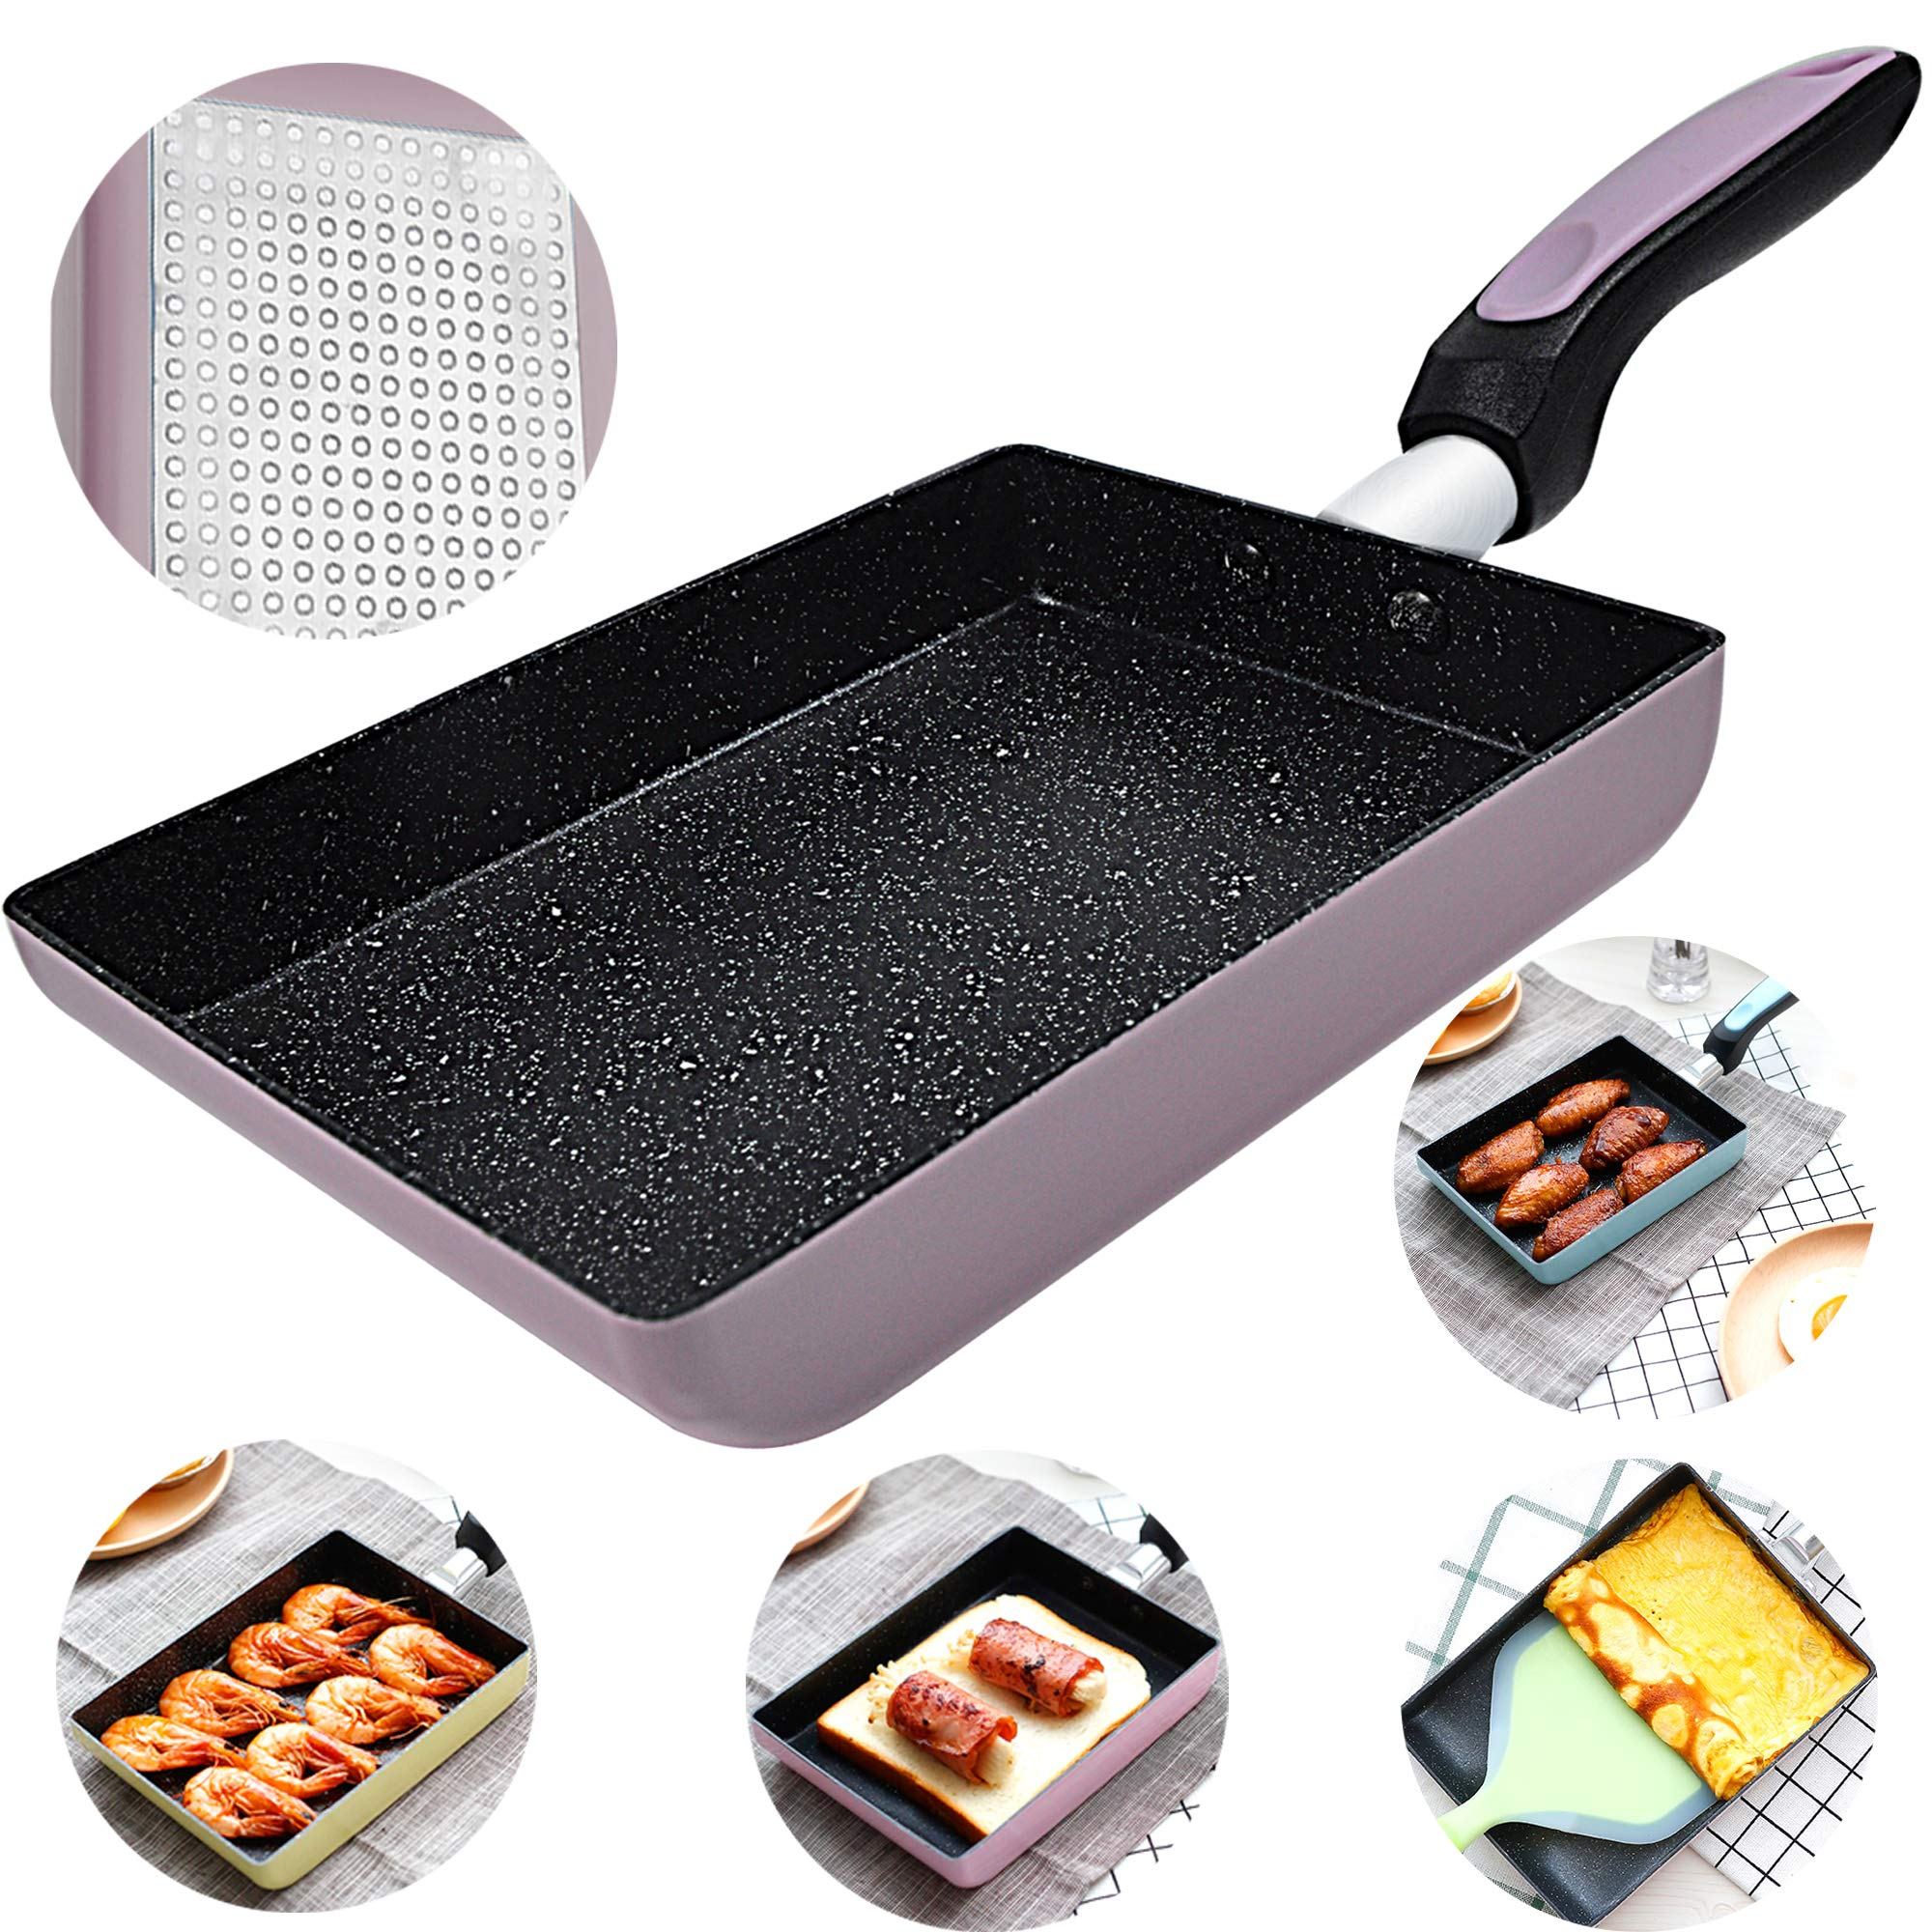 Tamagoyaki Japanese Omelette Pan/Egg Pan - Non-stick Coating - Rectangle Frying Pan Mini Frying Pan - Pink by IBBM I WILL BE YOUR BEST MEMORY